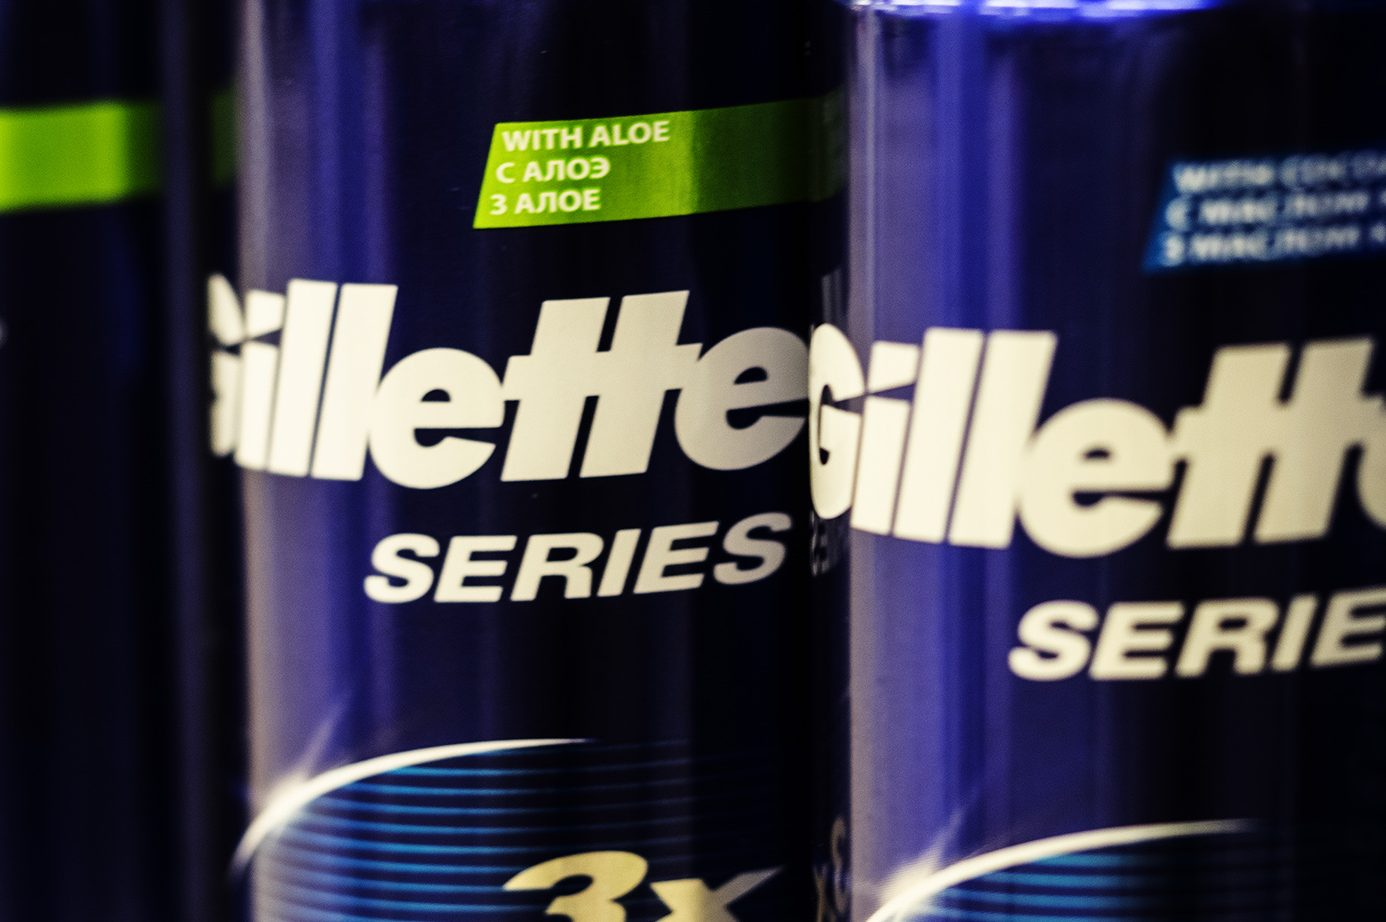 Exec Behind Controversial Gillette Ad Discusses Toxic